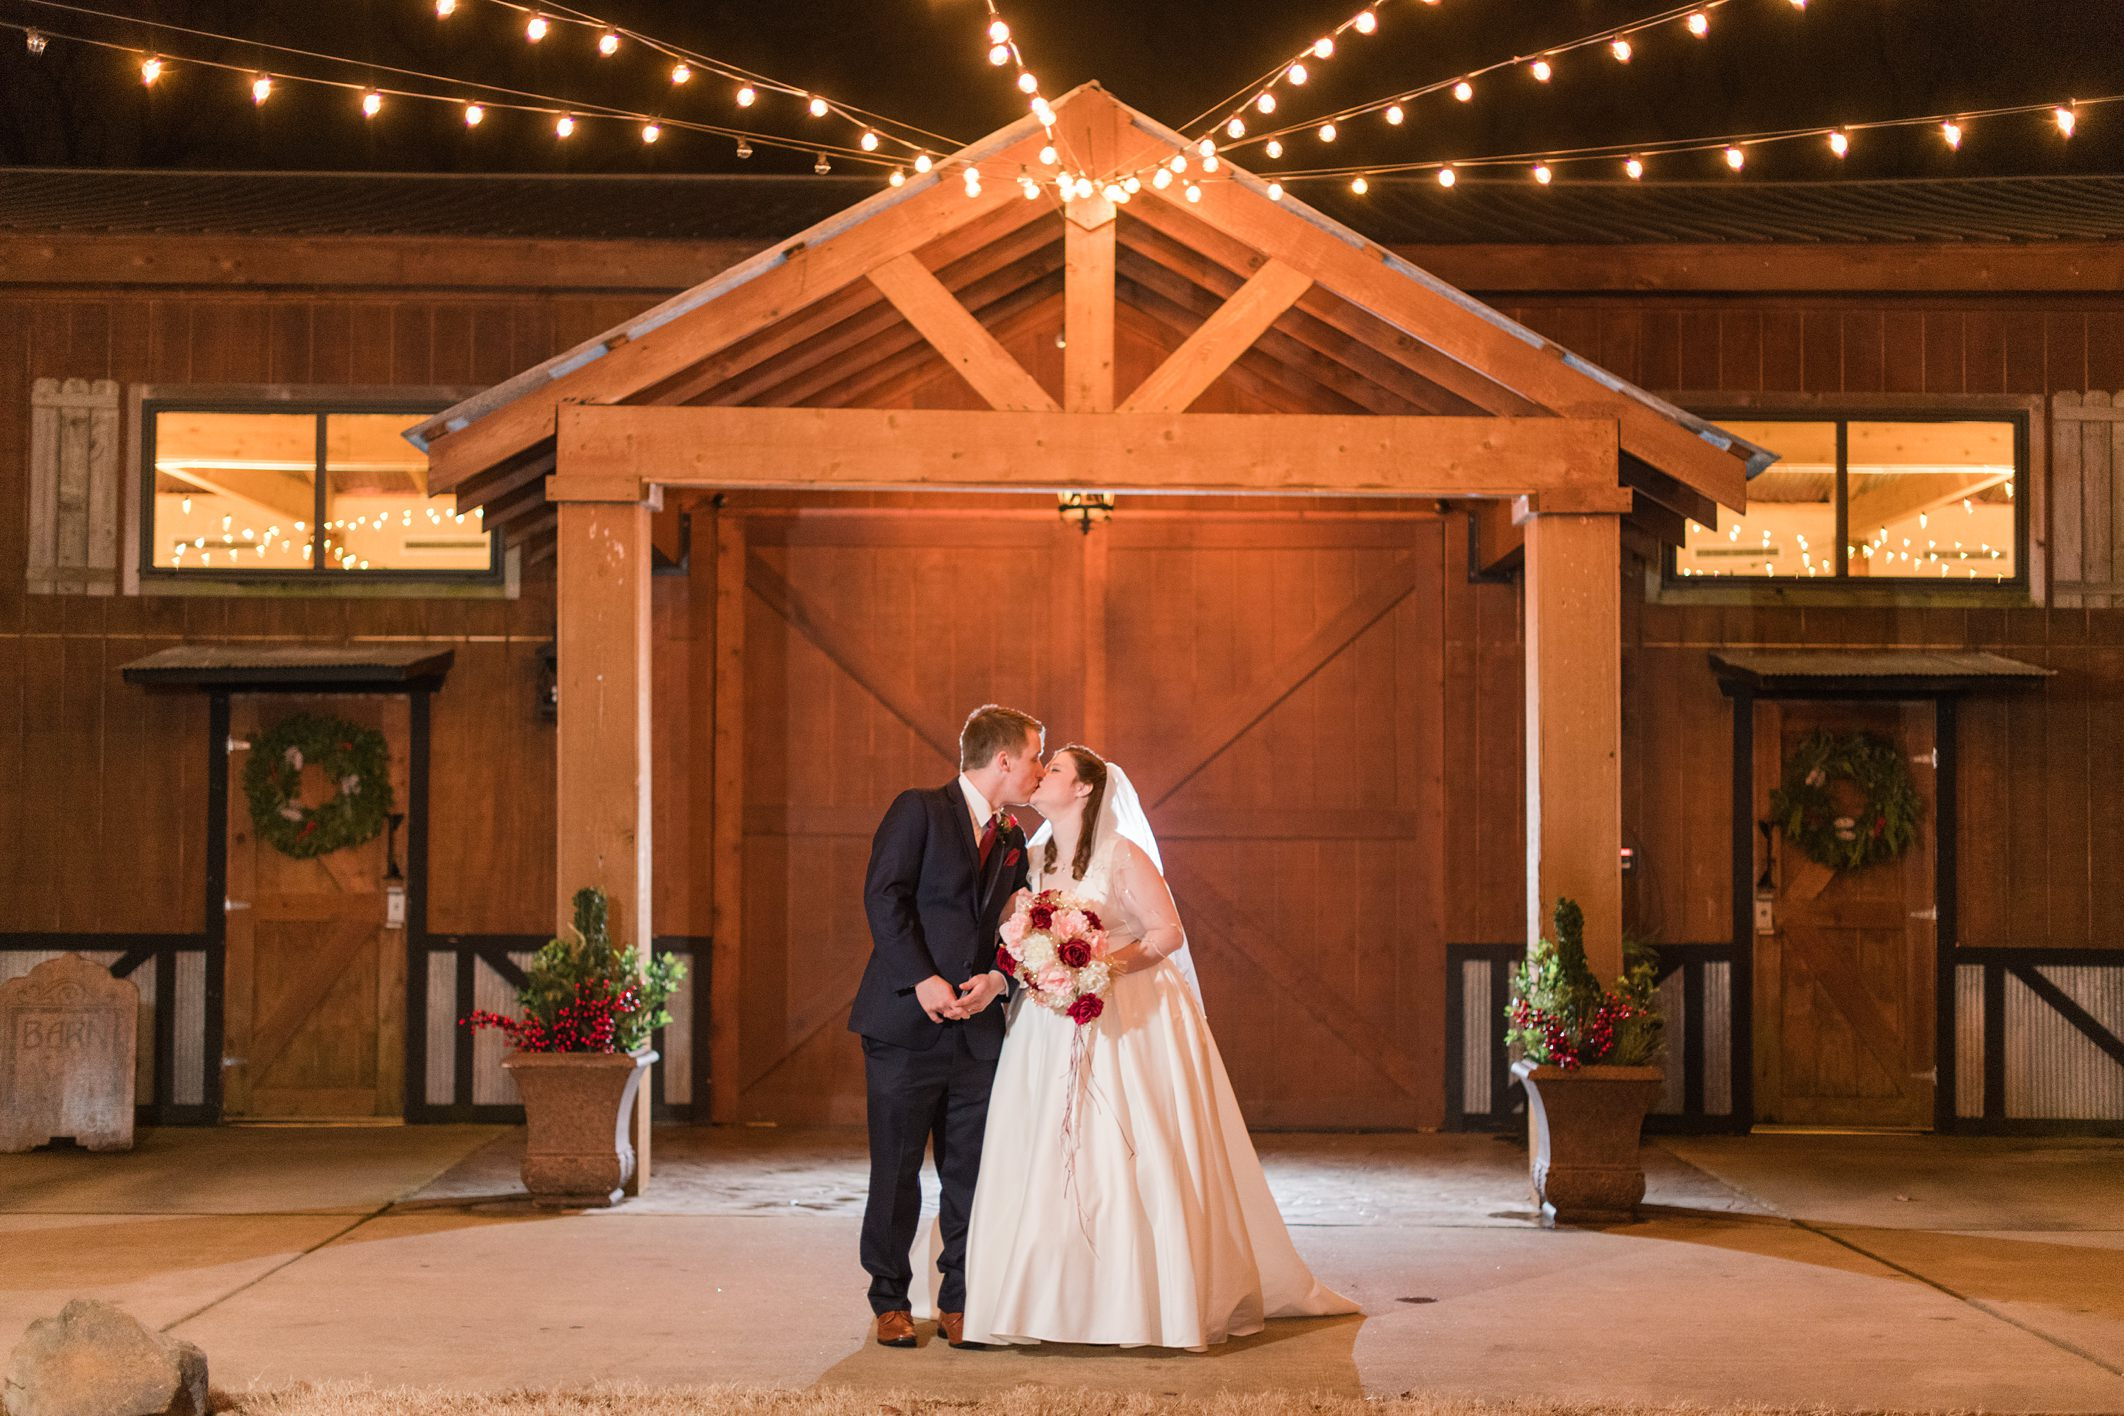 Micah + Alisha Wedding at Barn at the Springs in Springdale, AR